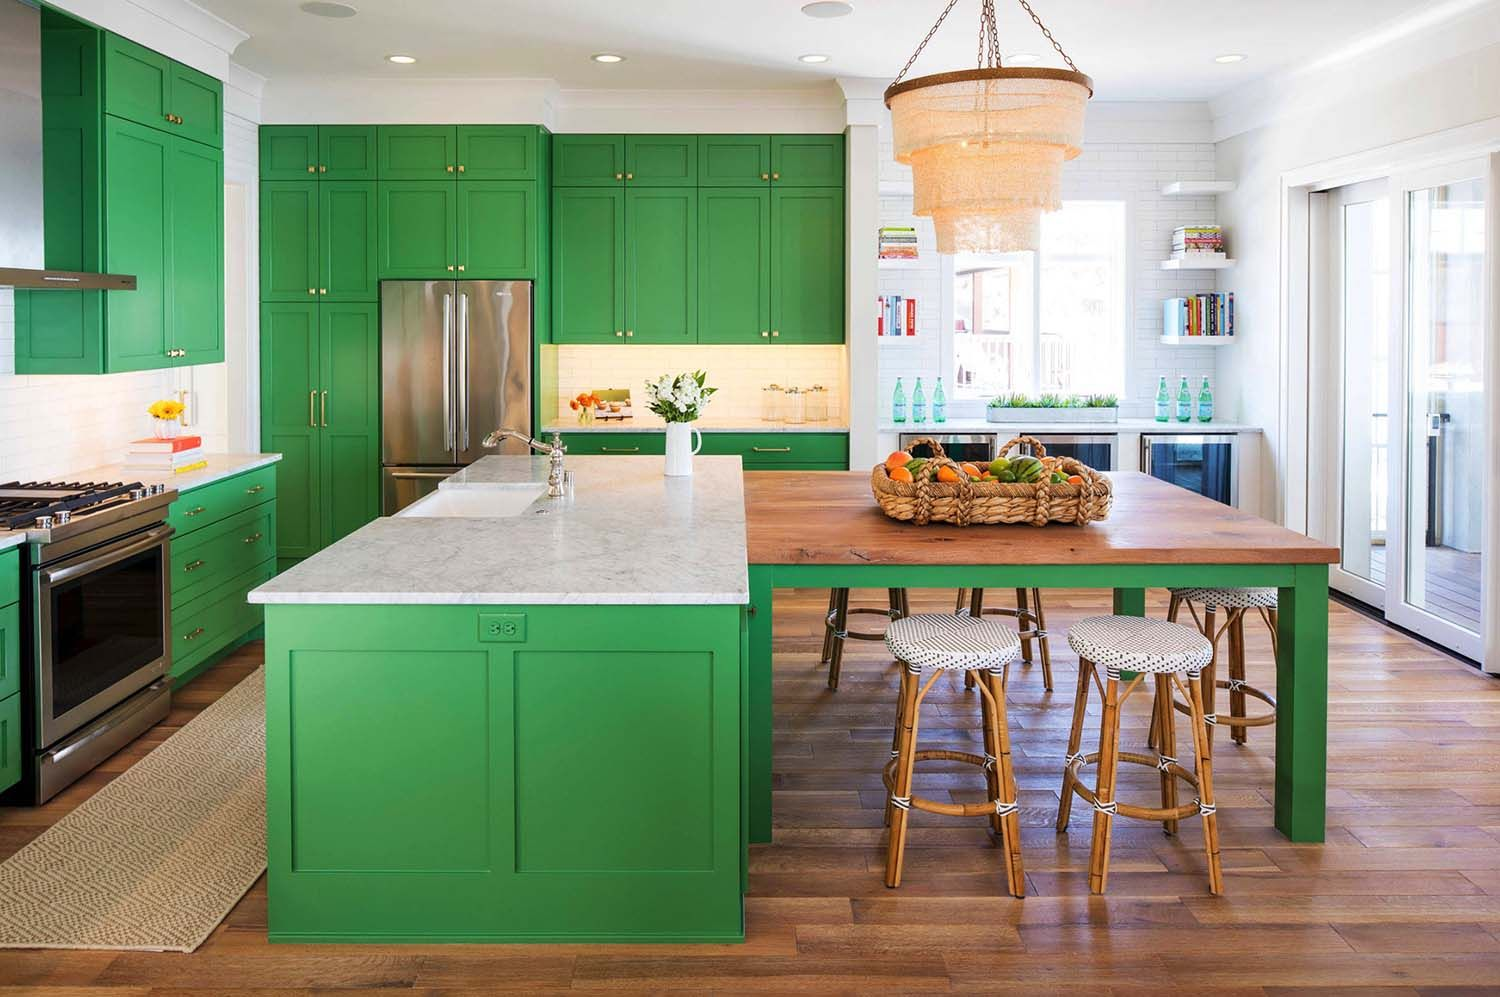 Minnesota Home Showcases Beach Style With Playful Pops Of Color Building A Kitchen Lake House Kitchen Green Kitchen Cabinets